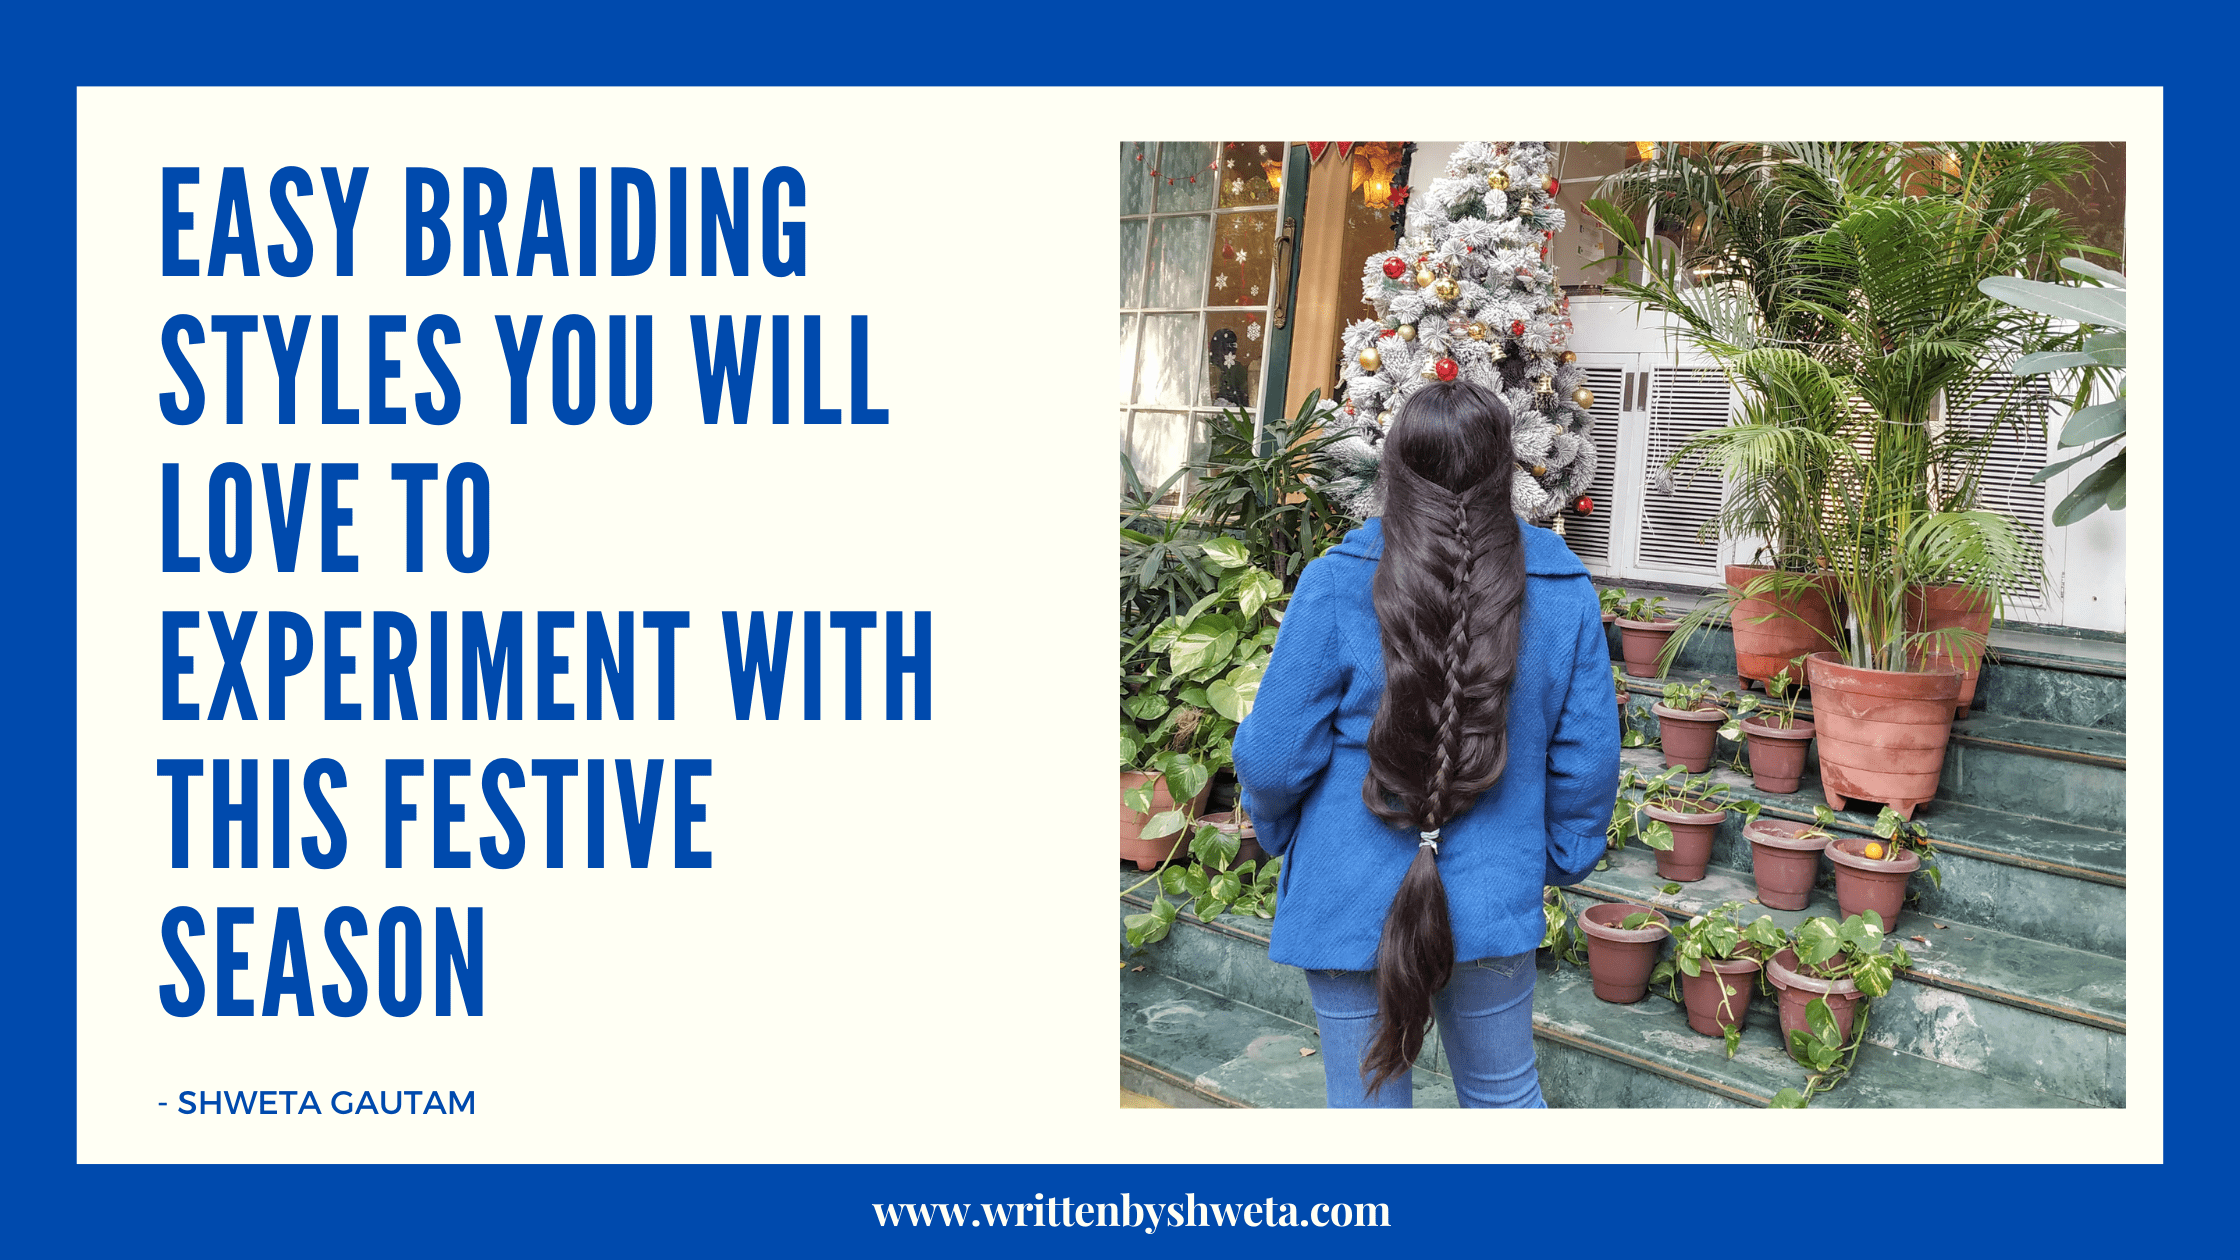 EASY BRAIDING STYLES YOU WILL LOVE TO EXPERIMENT WITH THESE FESTIVE SEASON